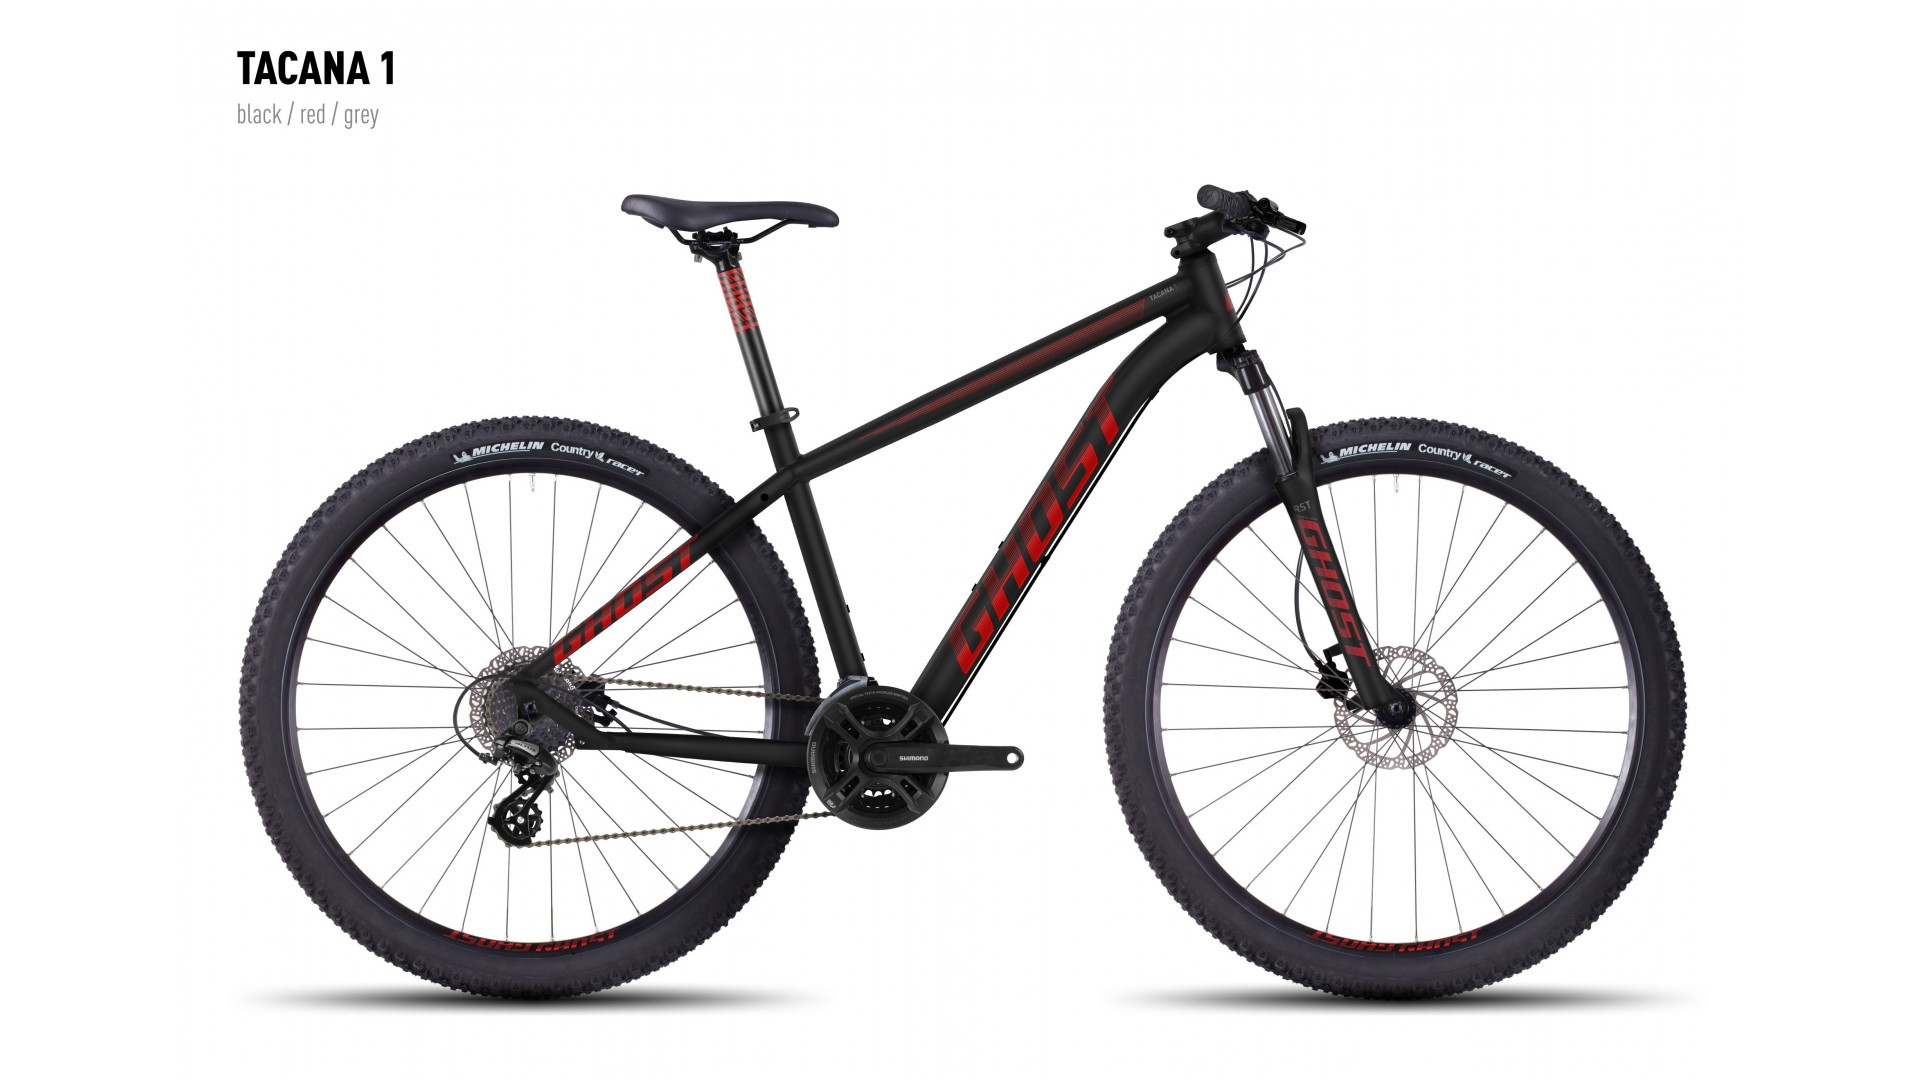 Велосипед GHOST Tacana 1 black/red/grey год 2016